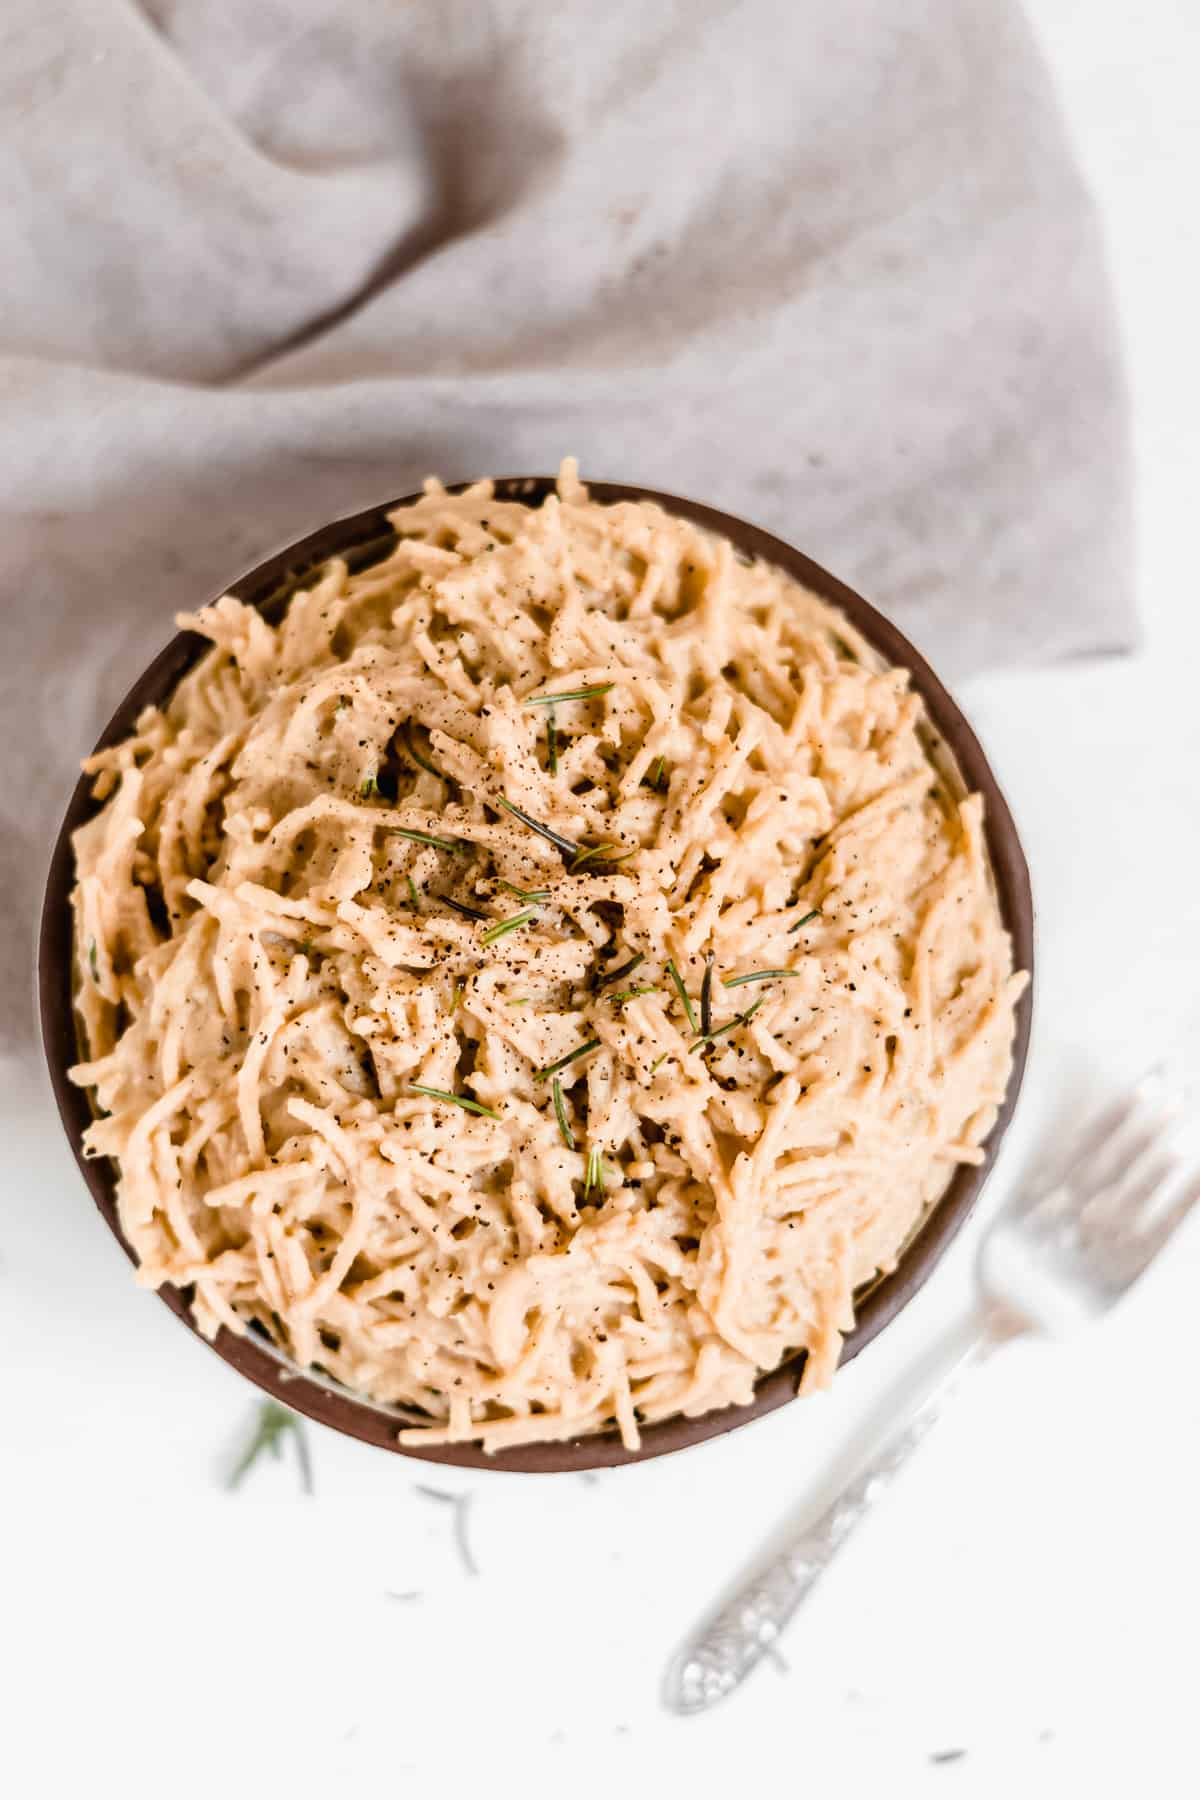 Overhead view of a big bowl of pasta with creamy white sauce and green herbs.